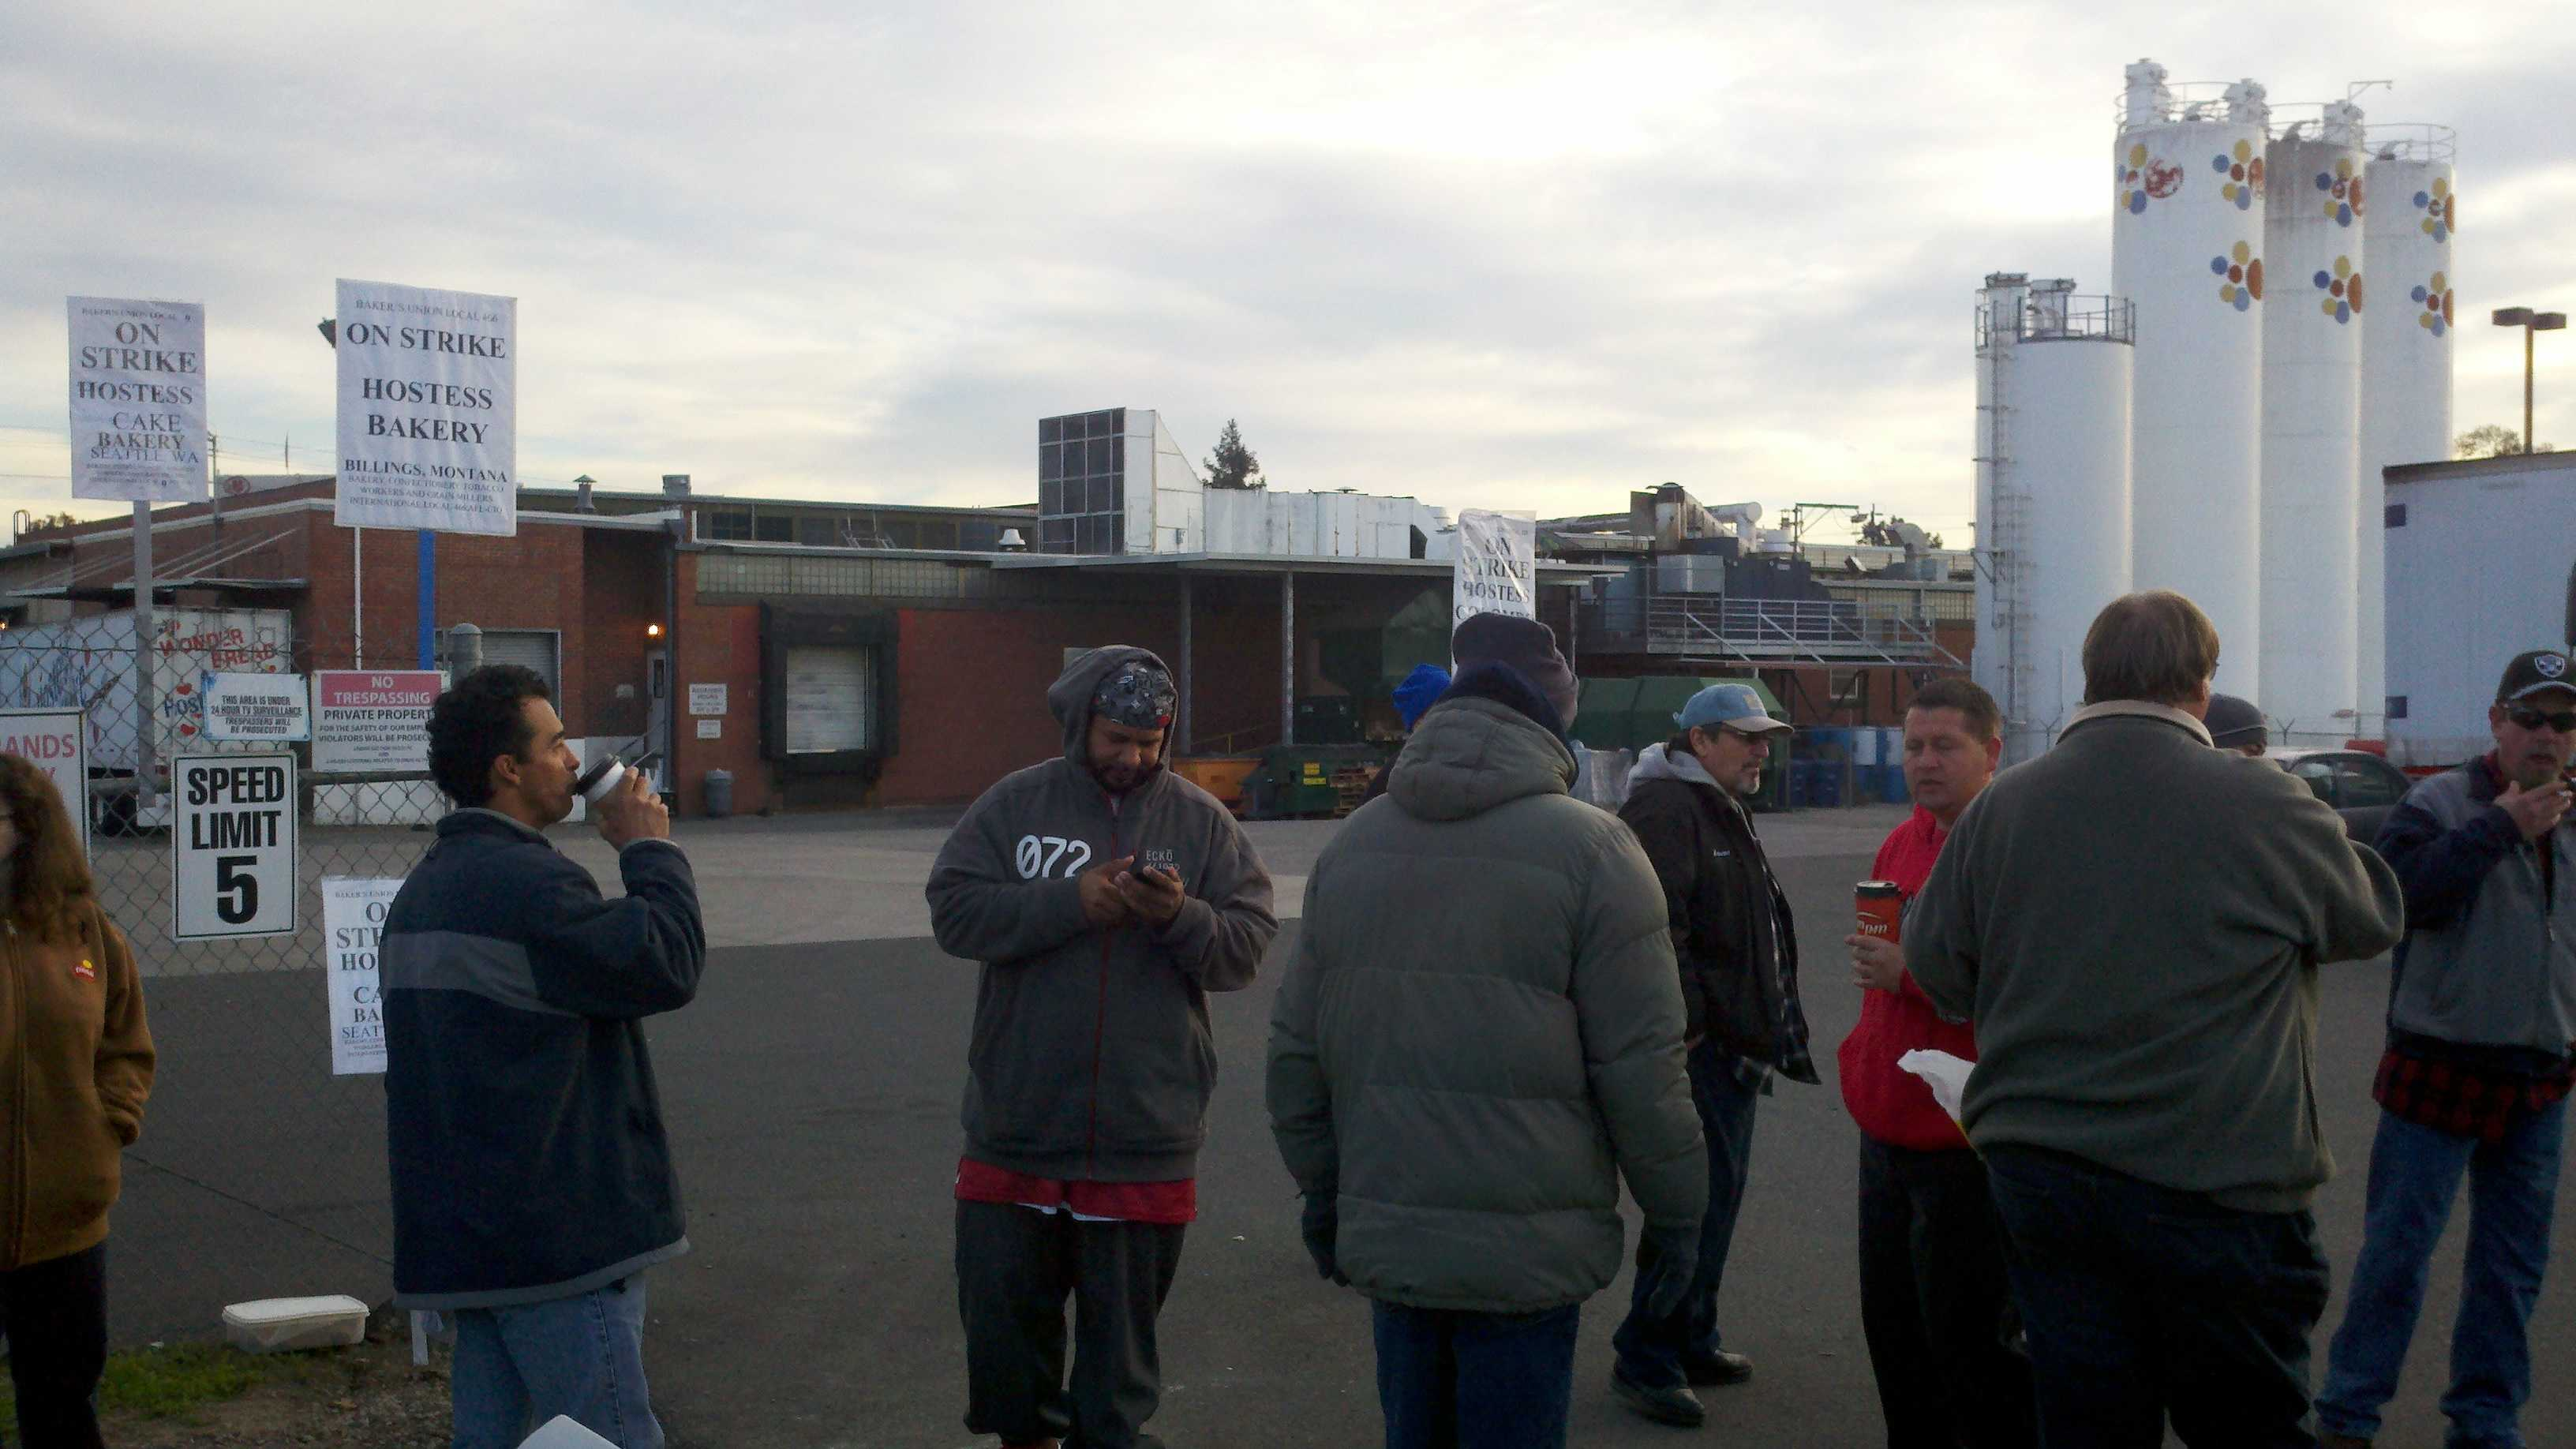 Supporters of a strike at Hostess plants nationwide walk a picket line at Sacramento's Arden Way facility.